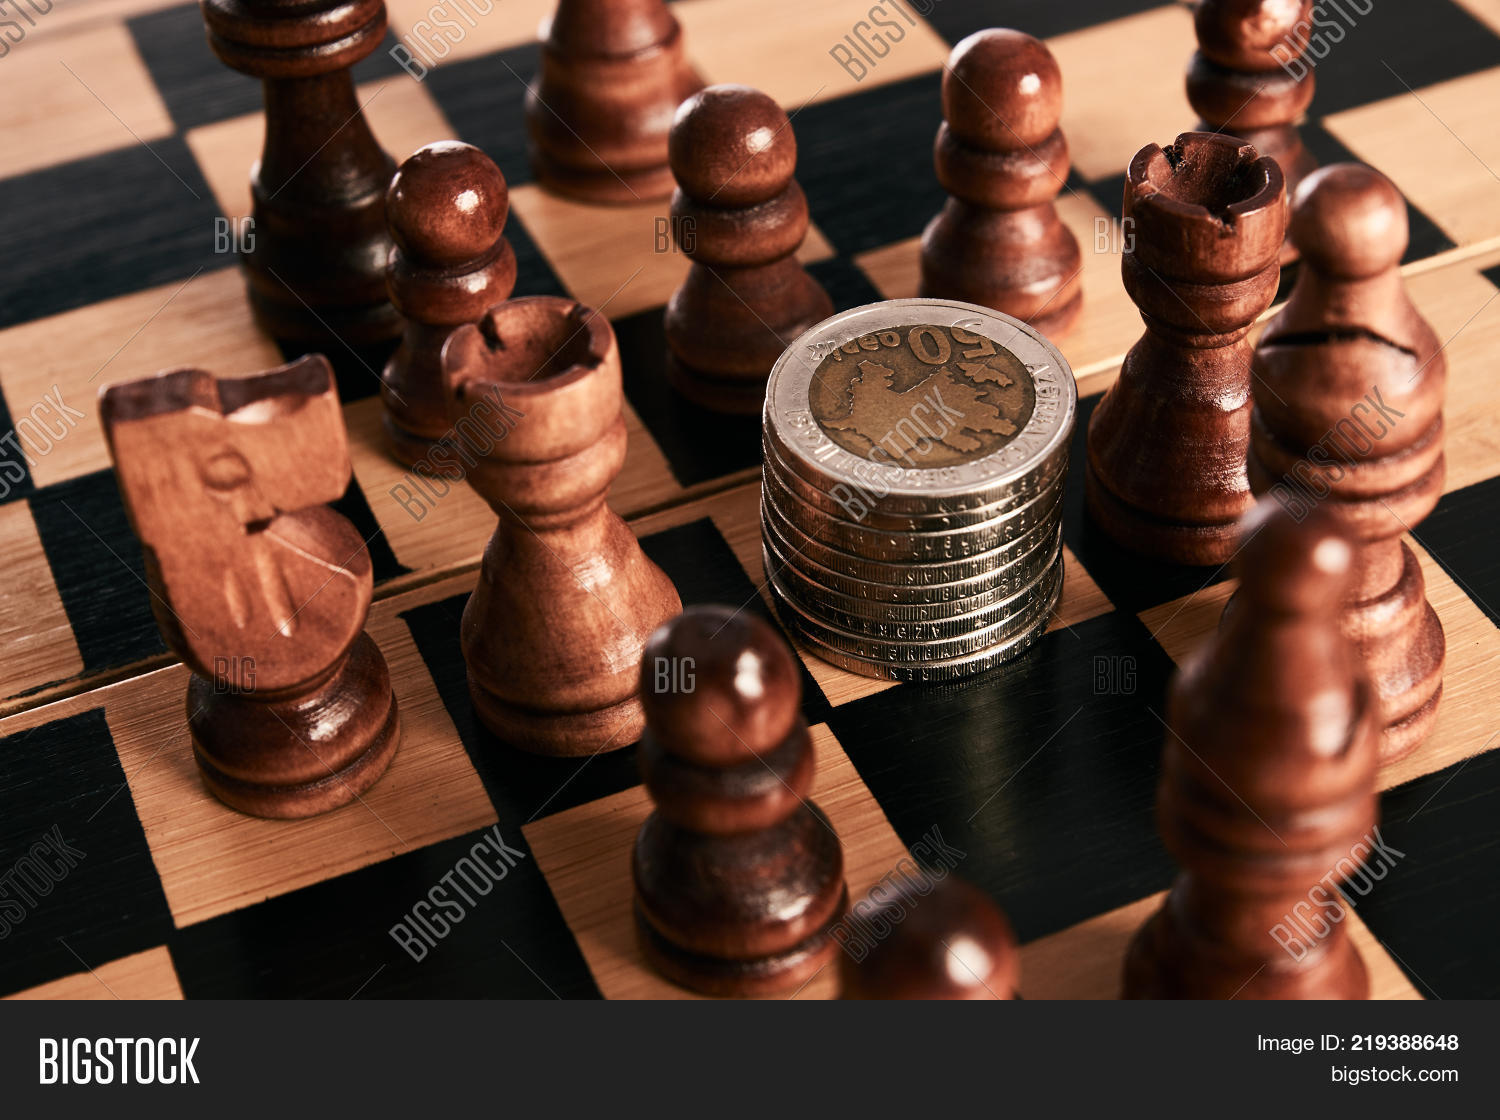 Chess Pieces Coins Image Photo Free Trial Bigstock